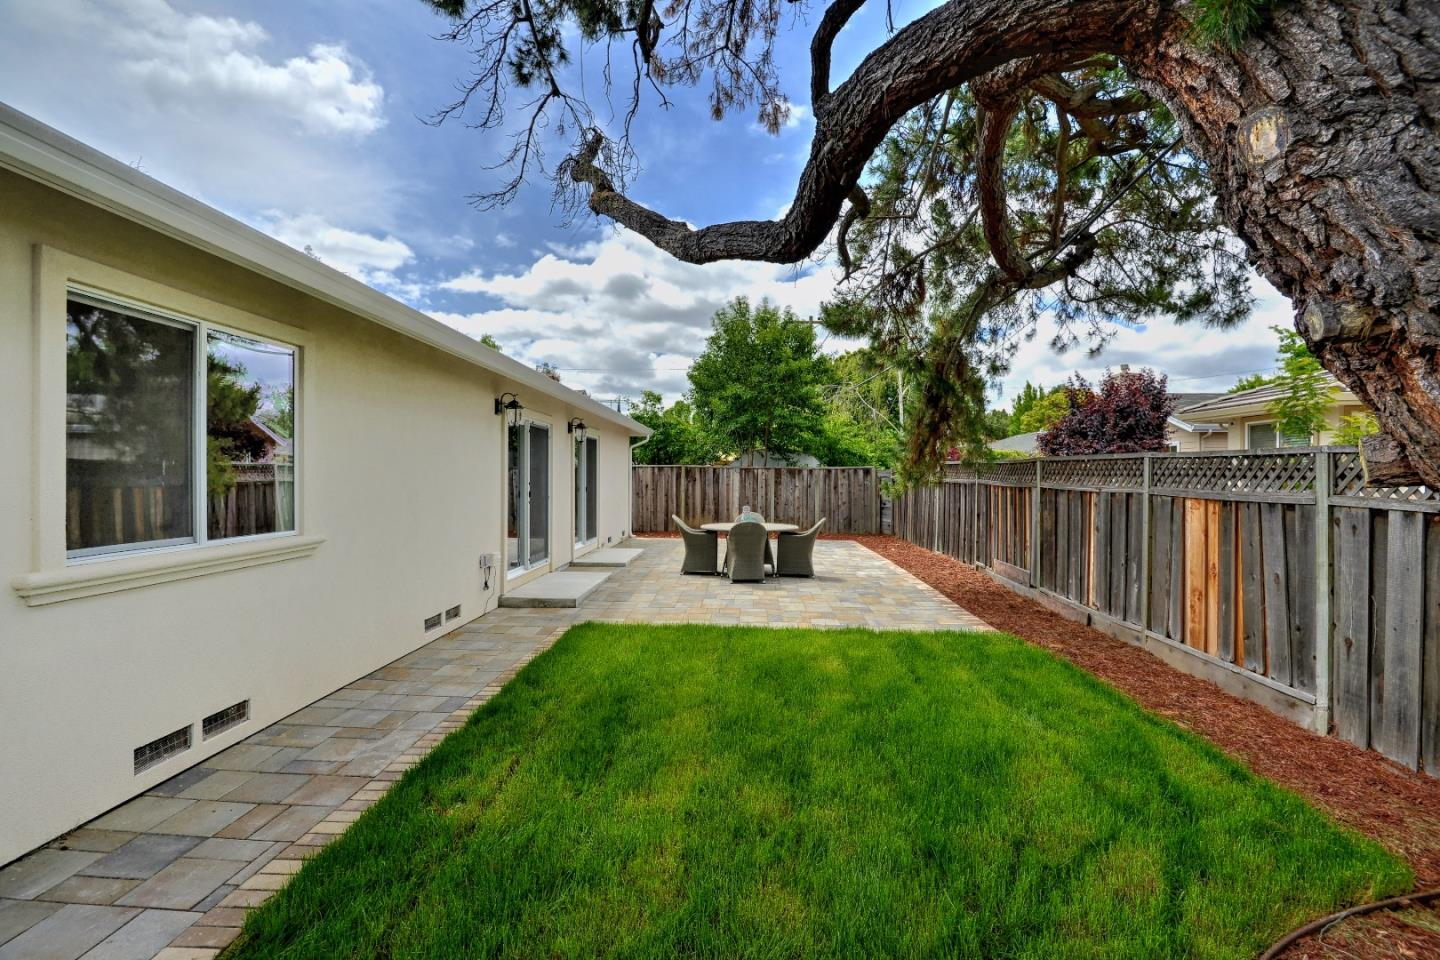 Additional photo for property listing at 1027 Mango Ave  SUNNYVALE, CALIFORNIA 94087